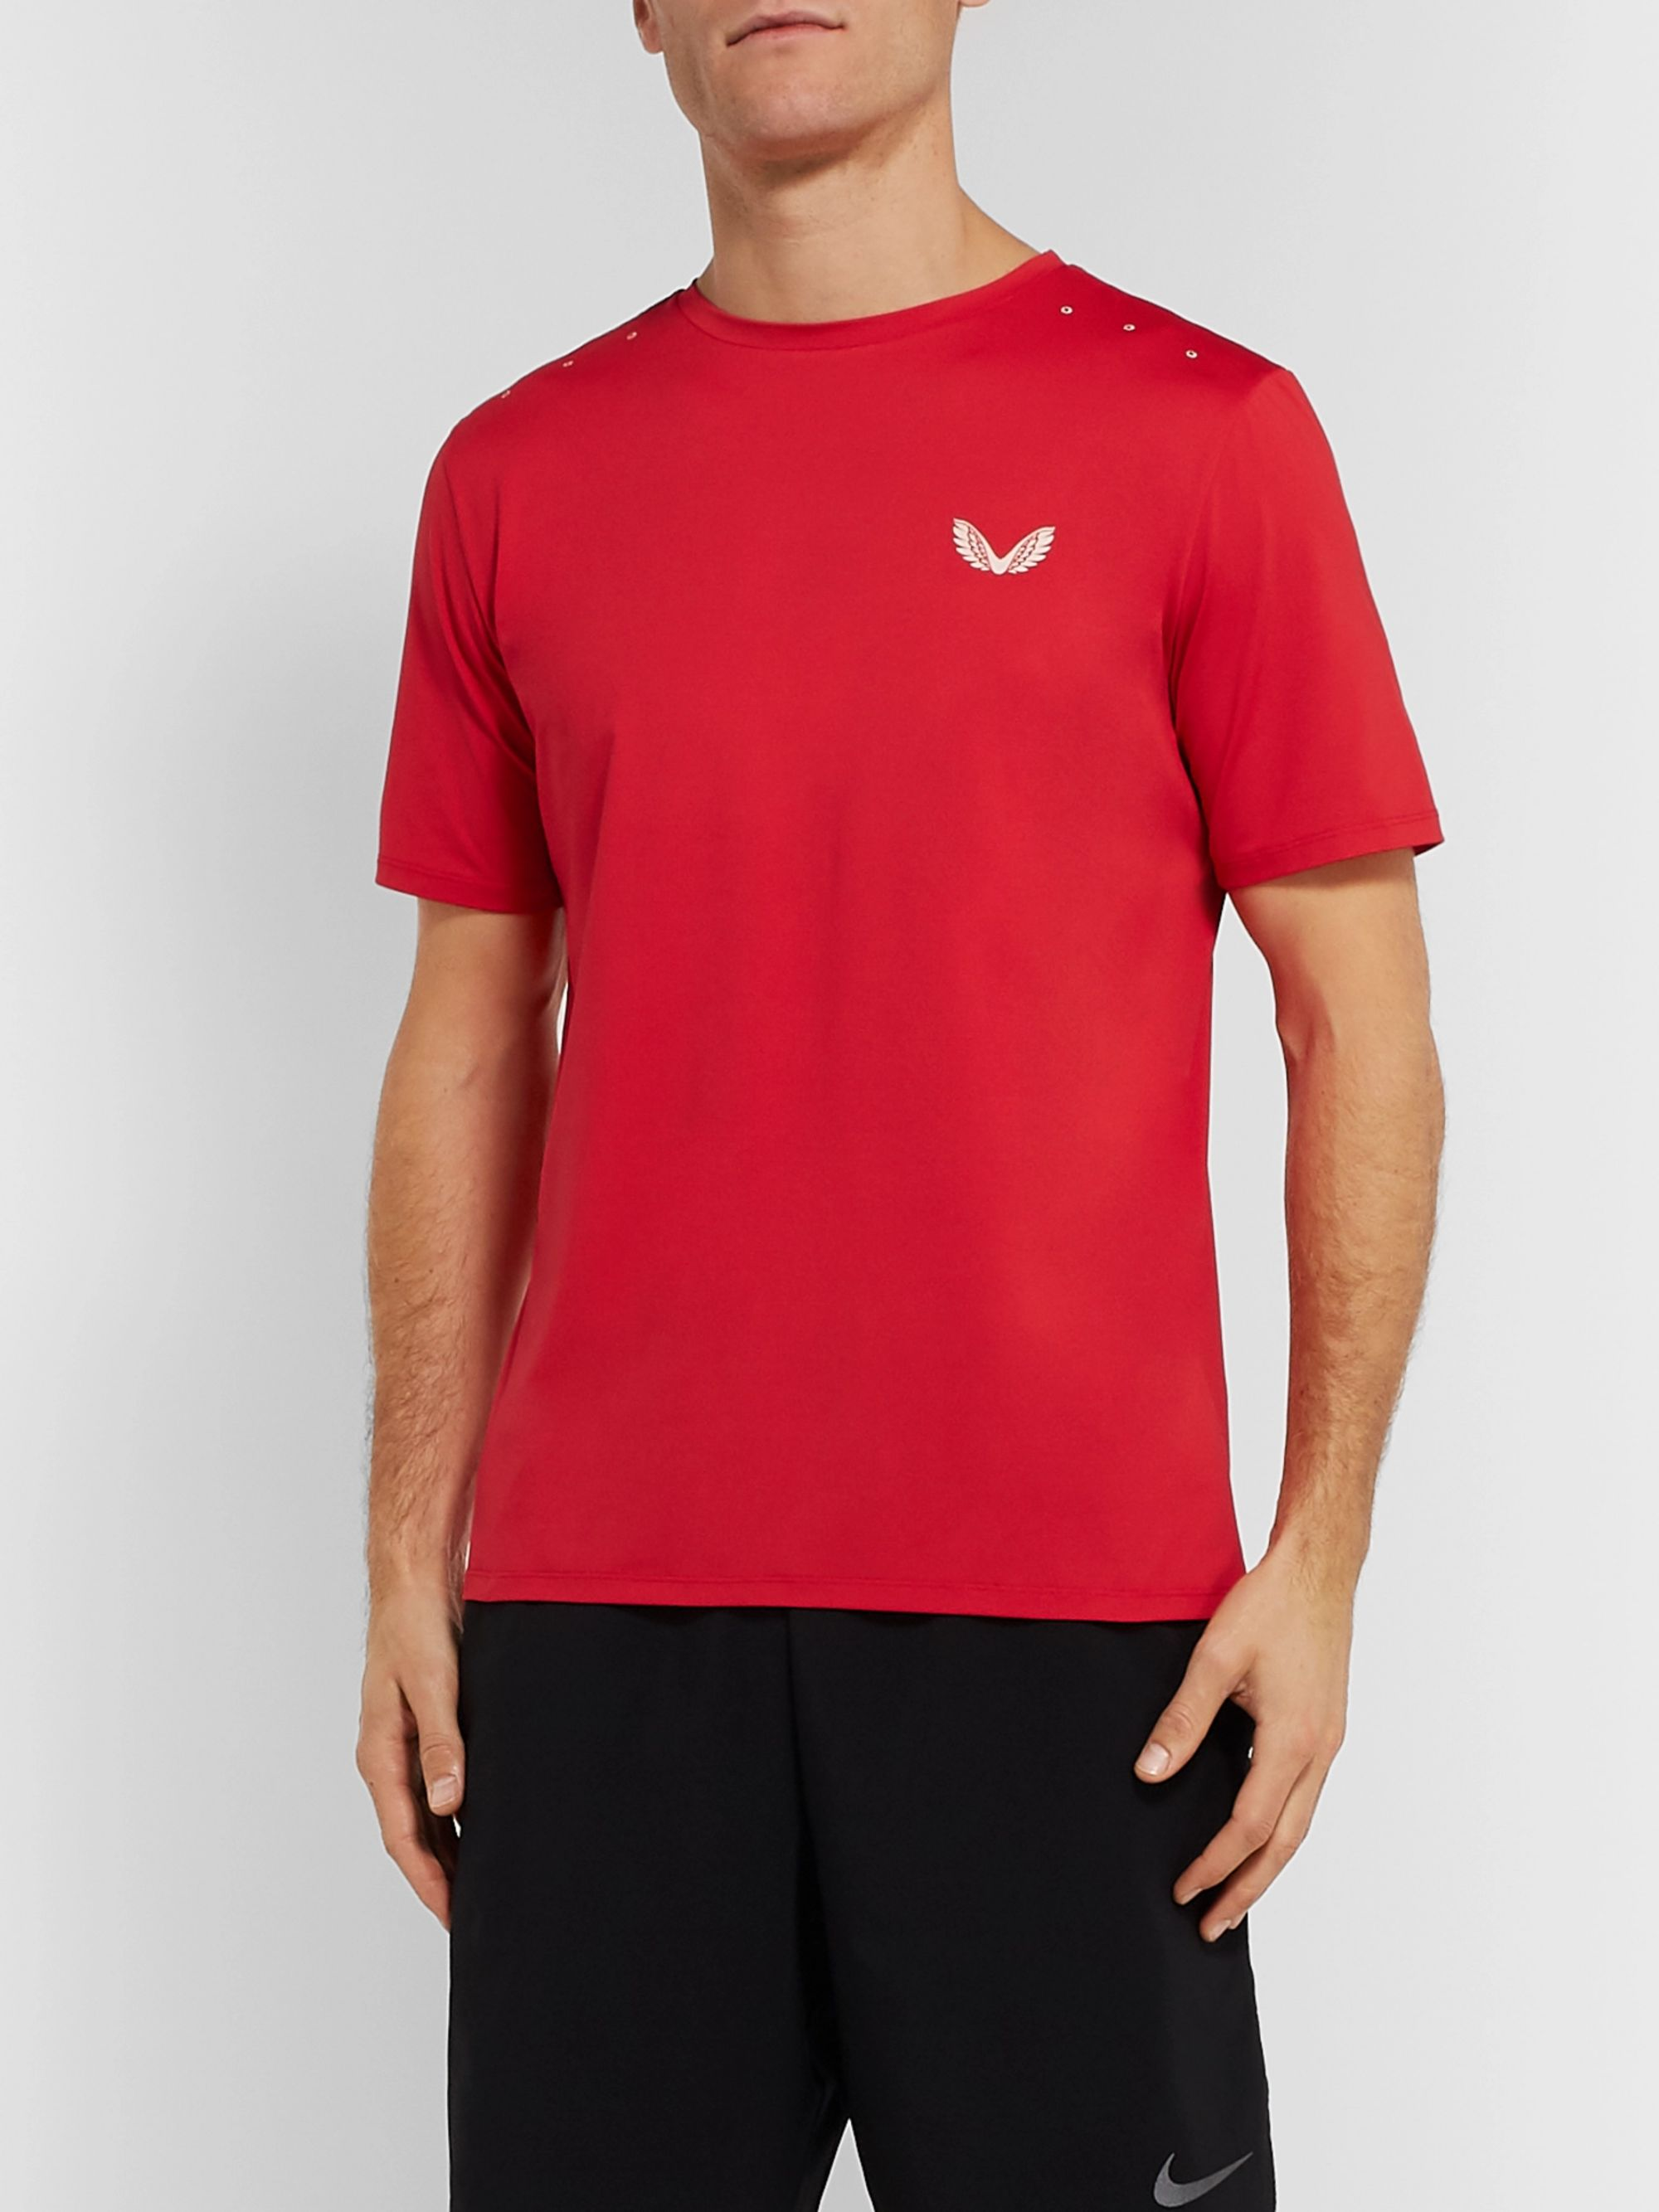 CASTORE Samuel Stretch-Mesh T-Shirt